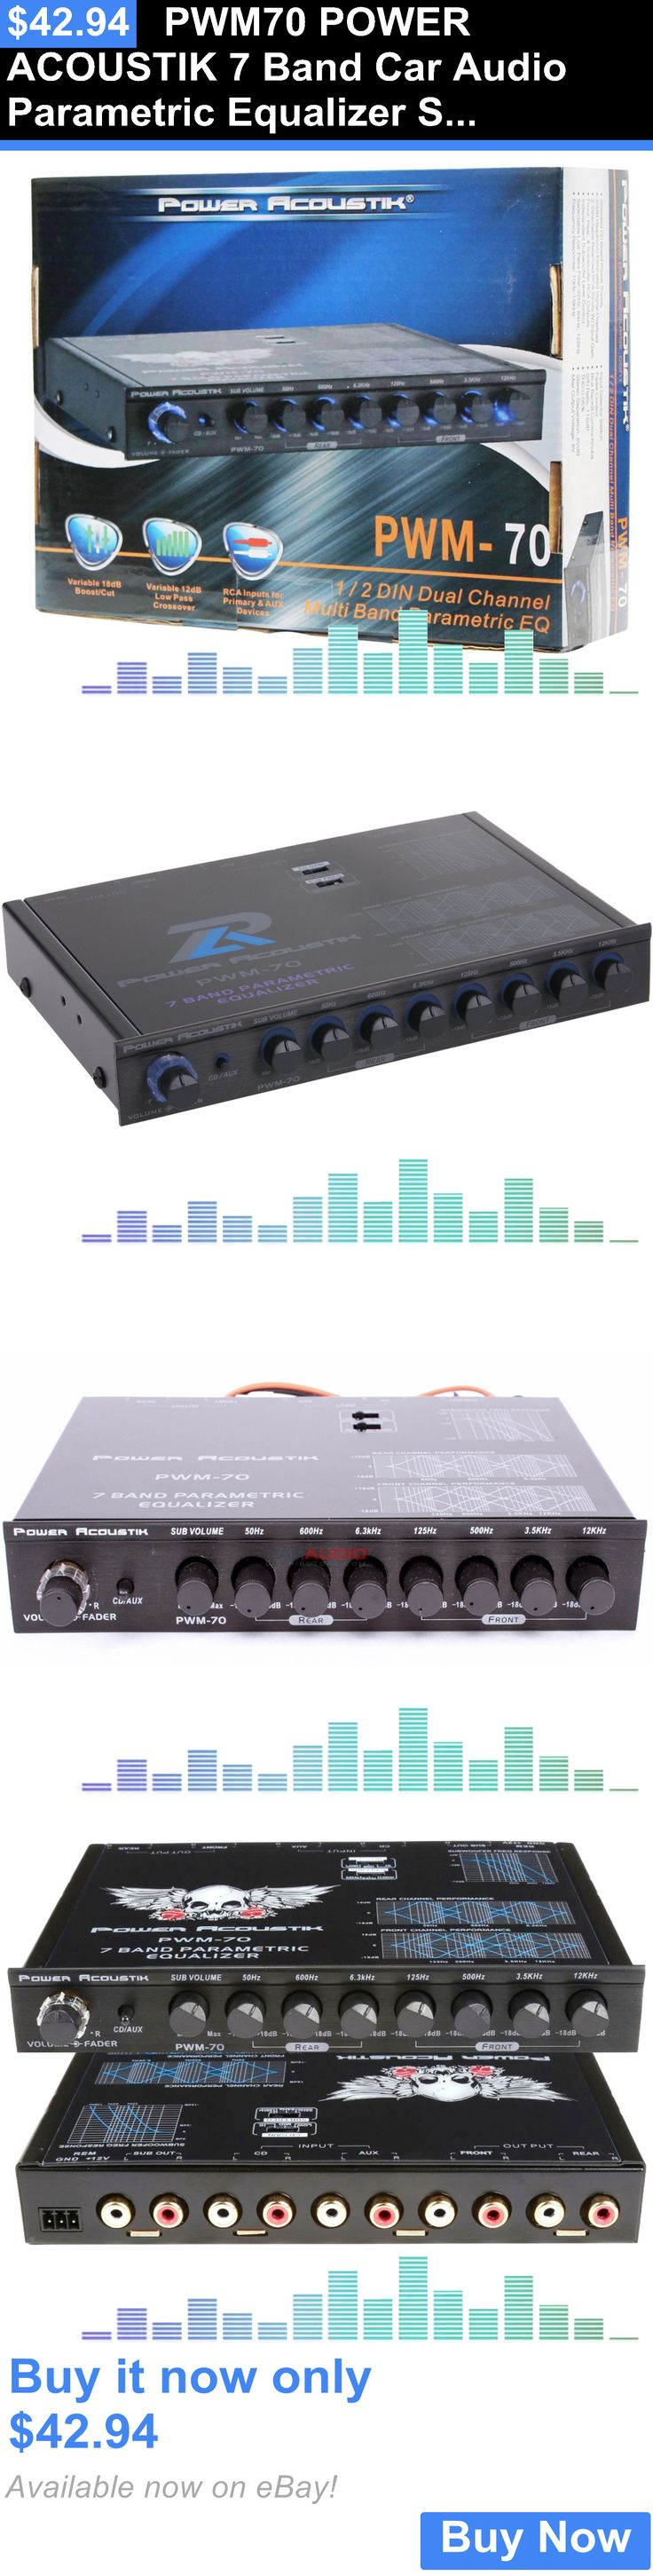 Signal Processors: Pwm70 Power Acoustik 7 Band Car Audio Parametric Equalizer Sub Level Crossover BUY IT NOW ONLY: $42.94